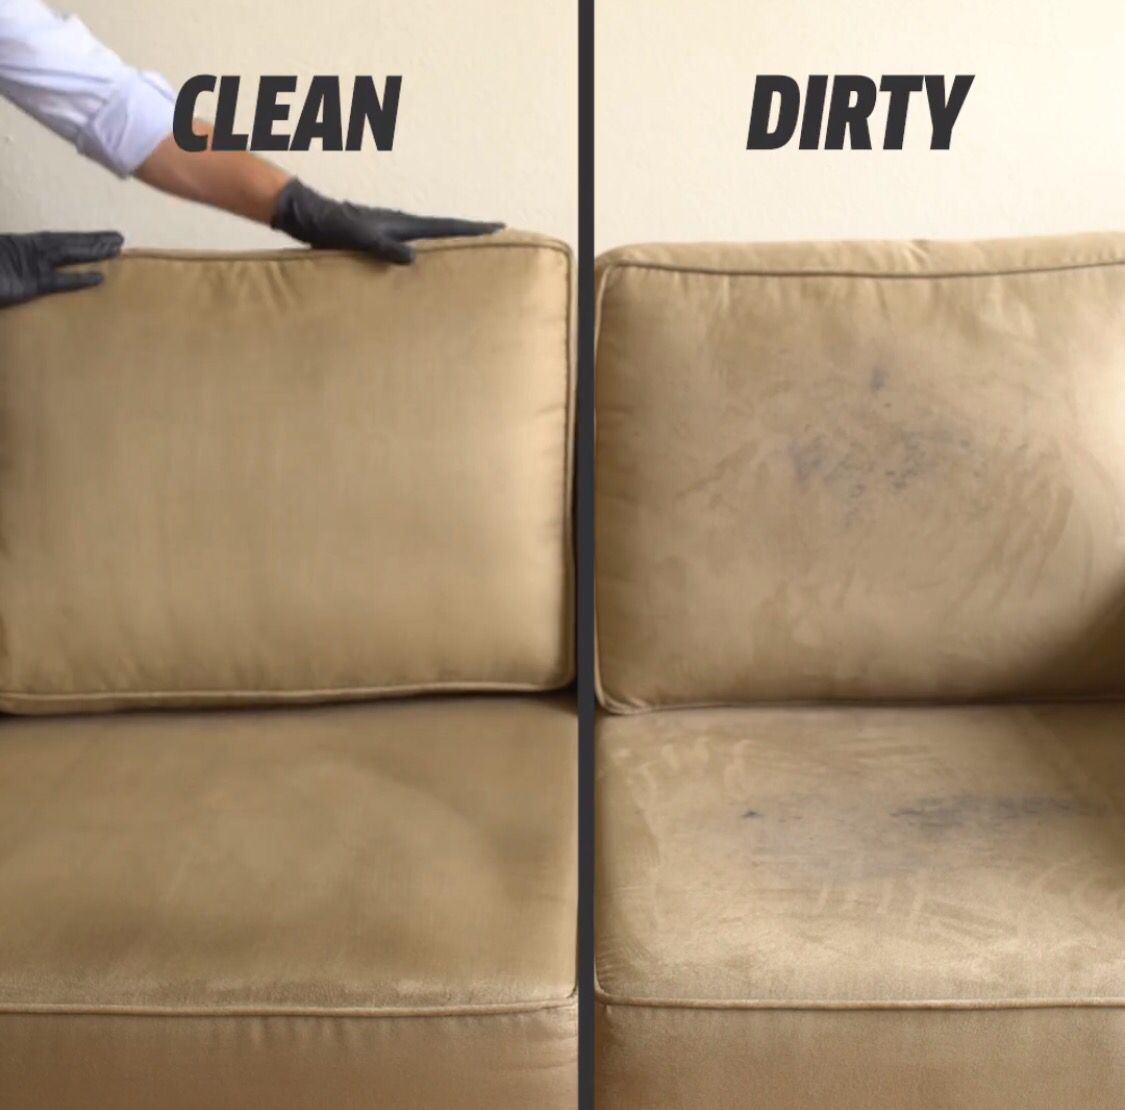 Diy Couch Cleaner 17oz Water 5oz Alcohol 3 4oz White Vinegar 1 5oz Baking Soda 1tbs Fabric Softener Spr Cleaning Microfiber Couch Clean Couch Clean Sofa